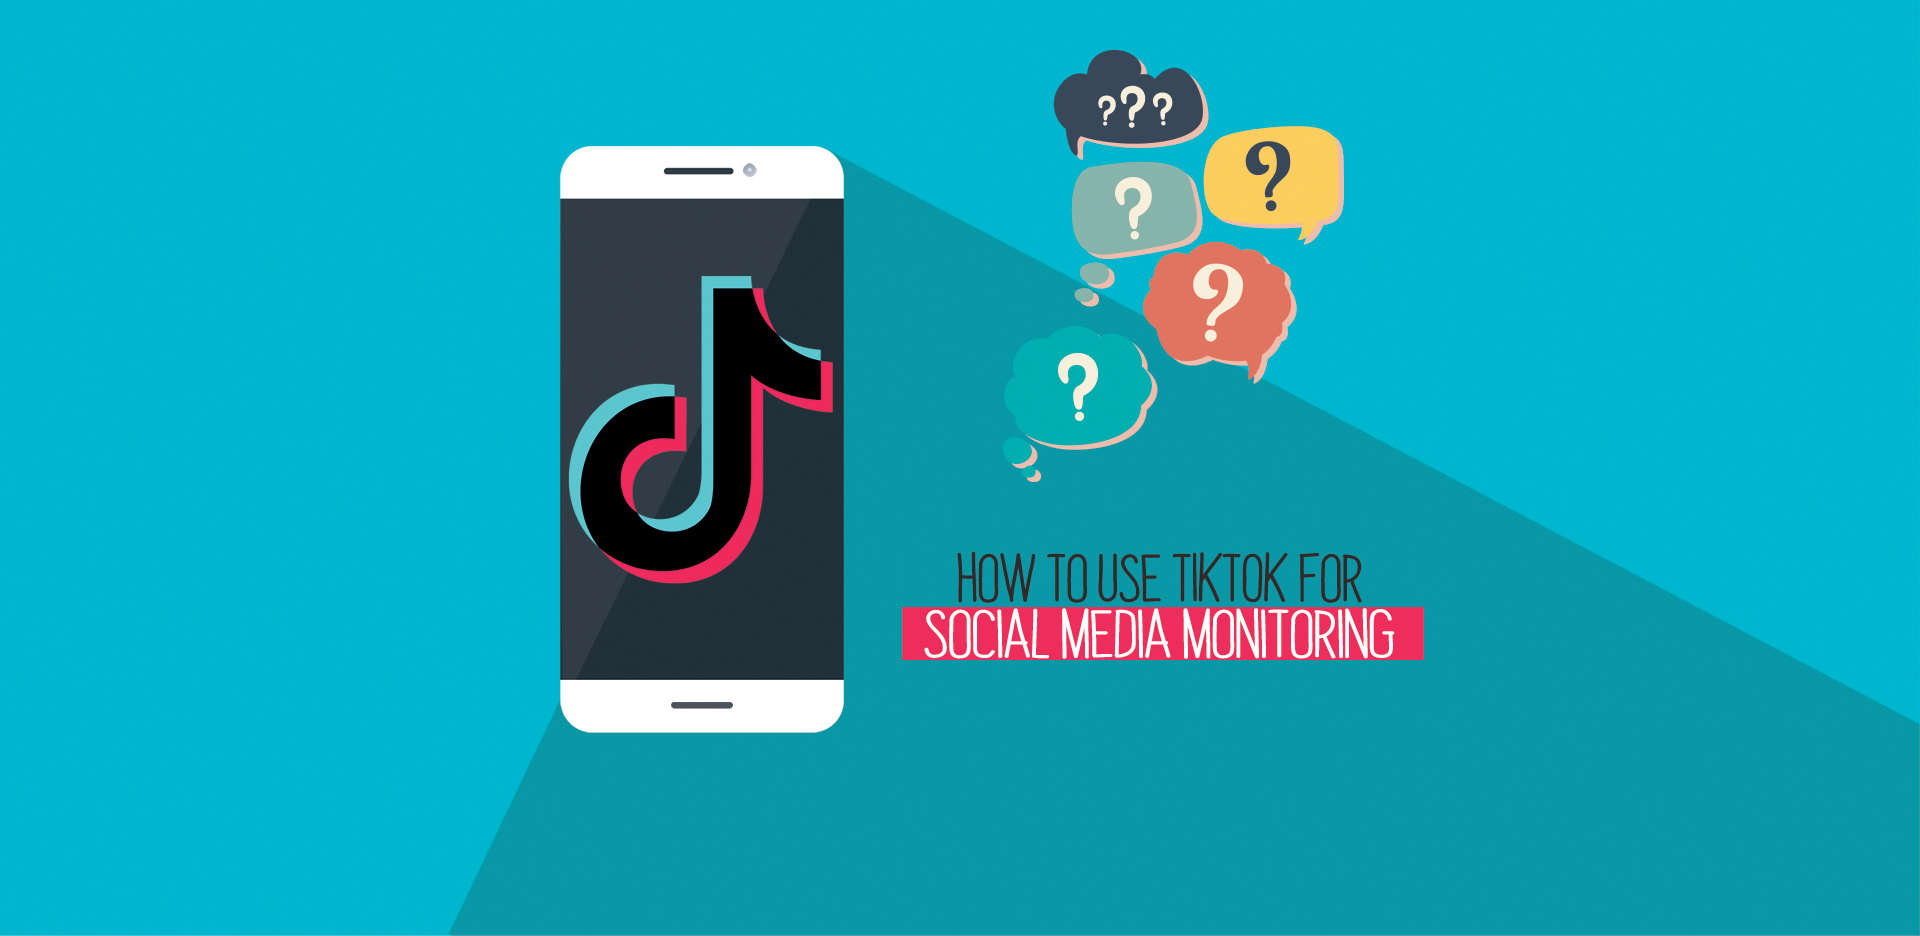 How to use TikTok for social media monitoring